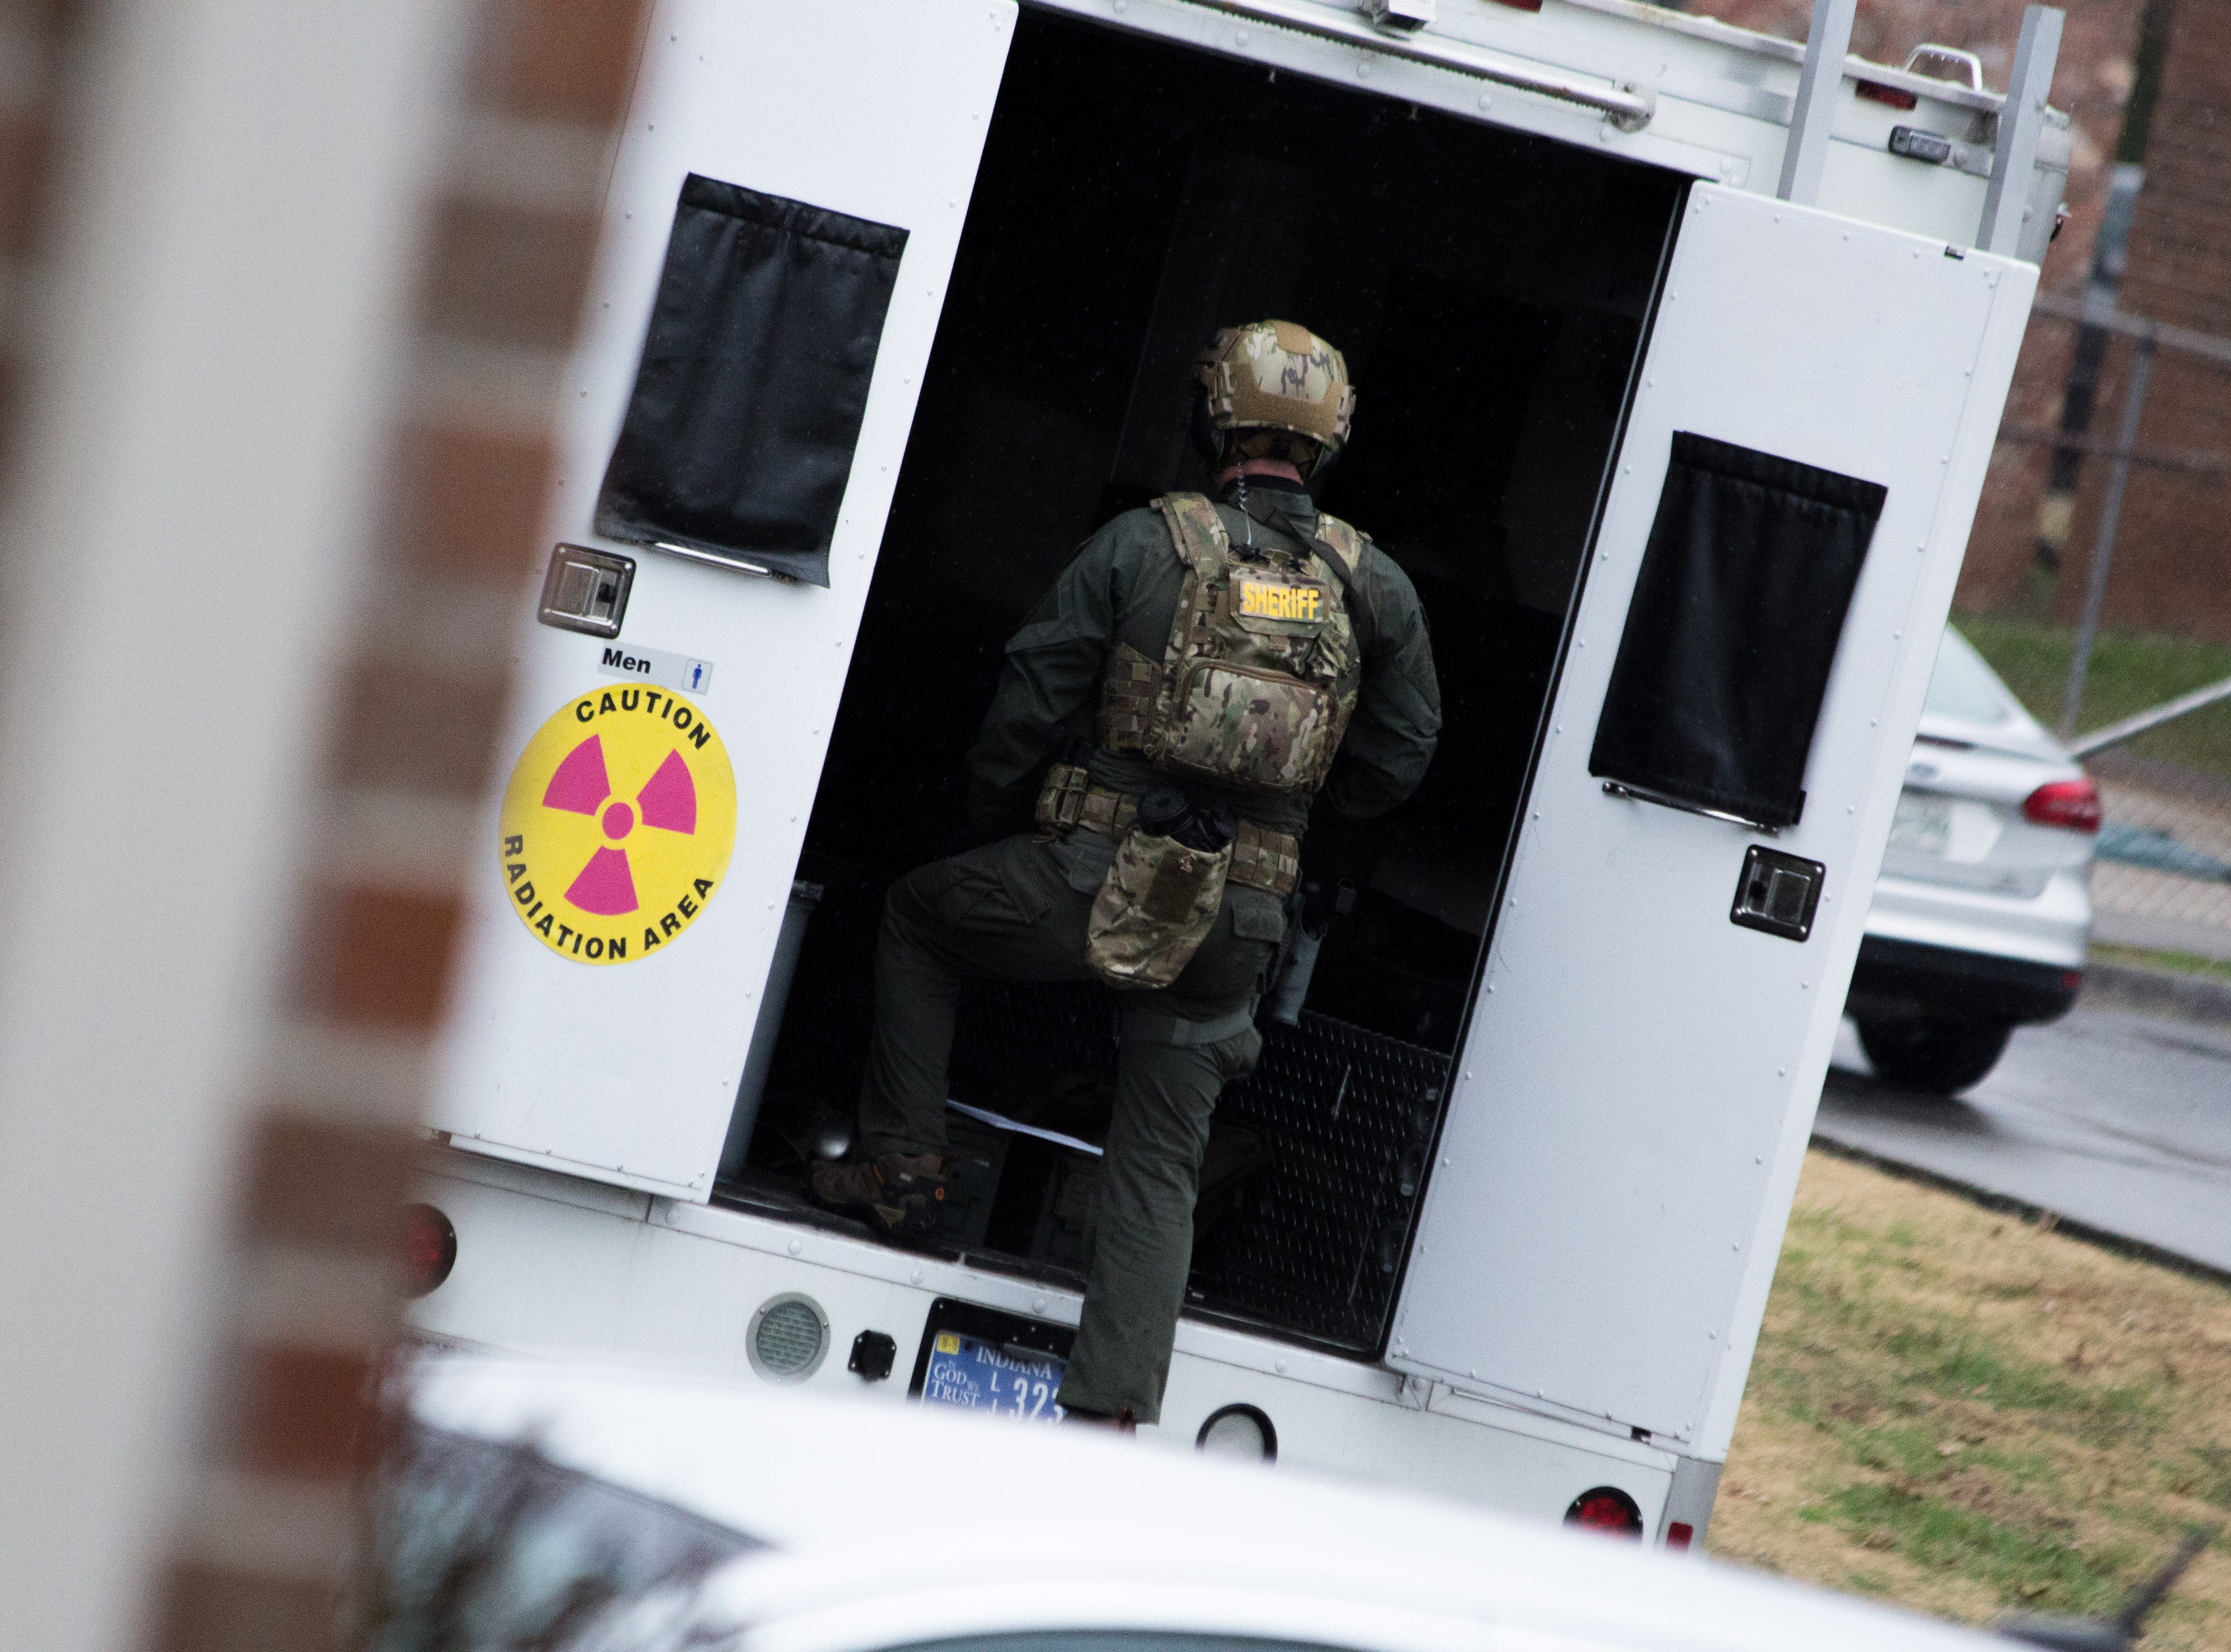 A Blount County officer returns to a vehicle during an hours-long standoff at a Blount County apartment complex on Dec. 8, 2018. One man was killed.